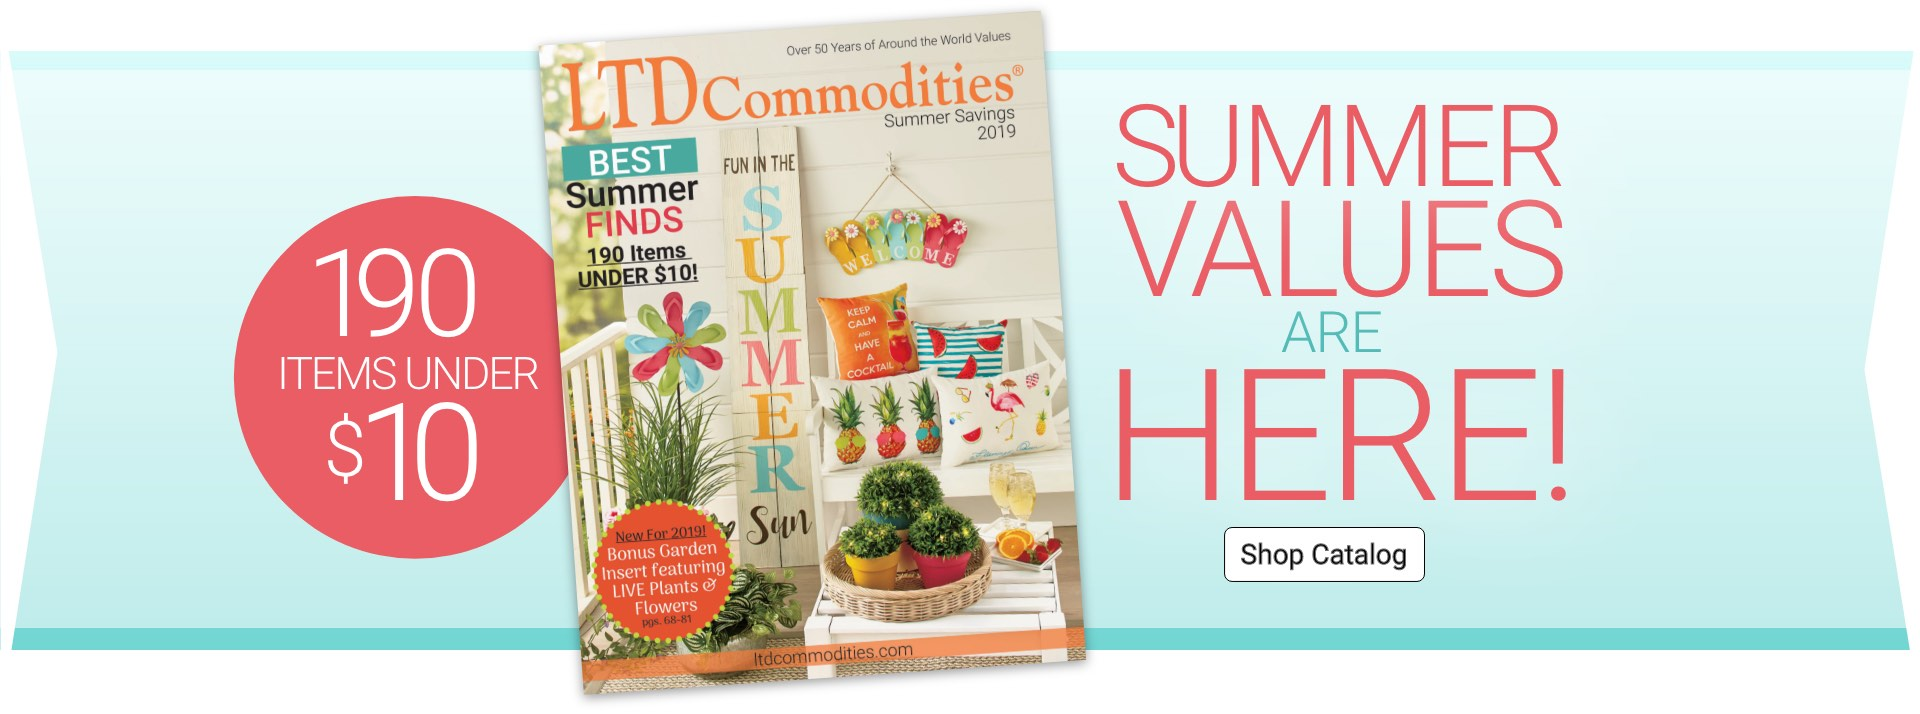 New Summer Values Are Here! 190 Items Under $10! Shop Catalog